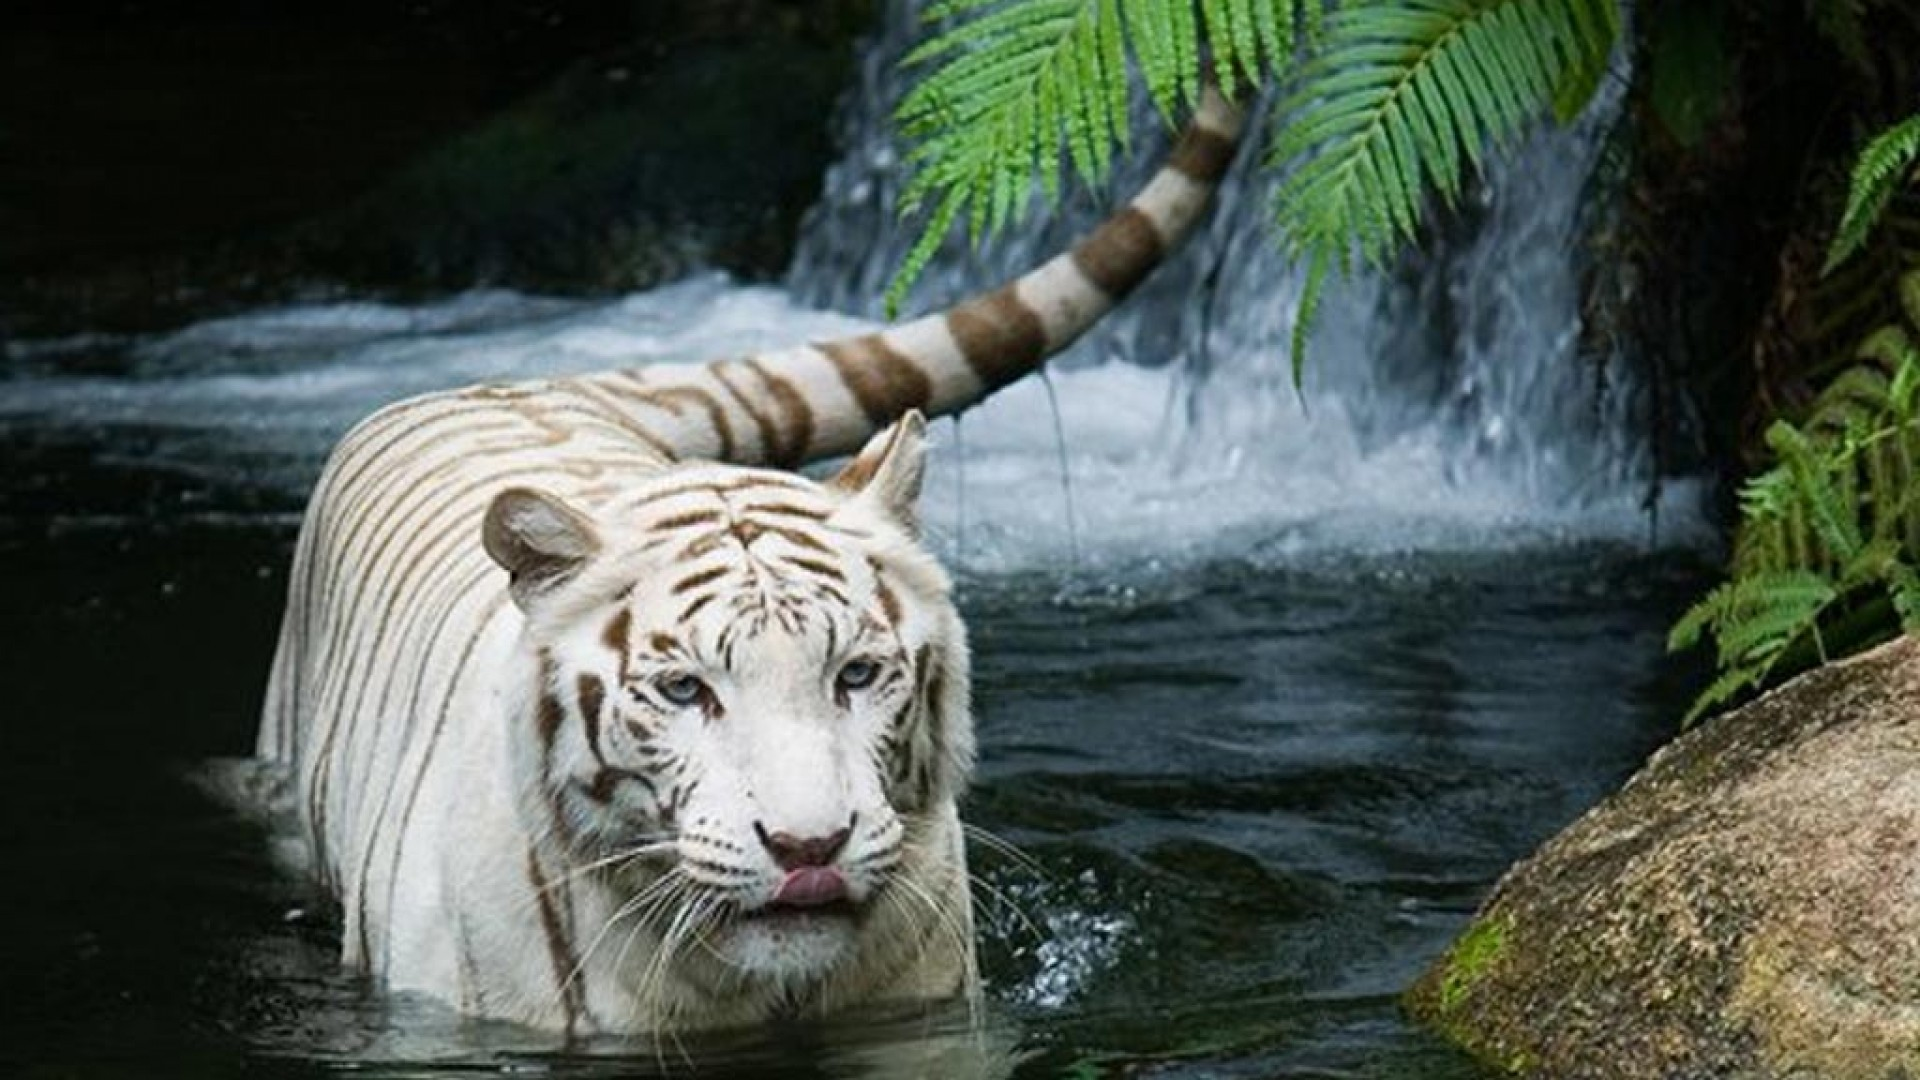 Amazing Animal Desktop Backgrounds Hdwallpapers New Collection Of